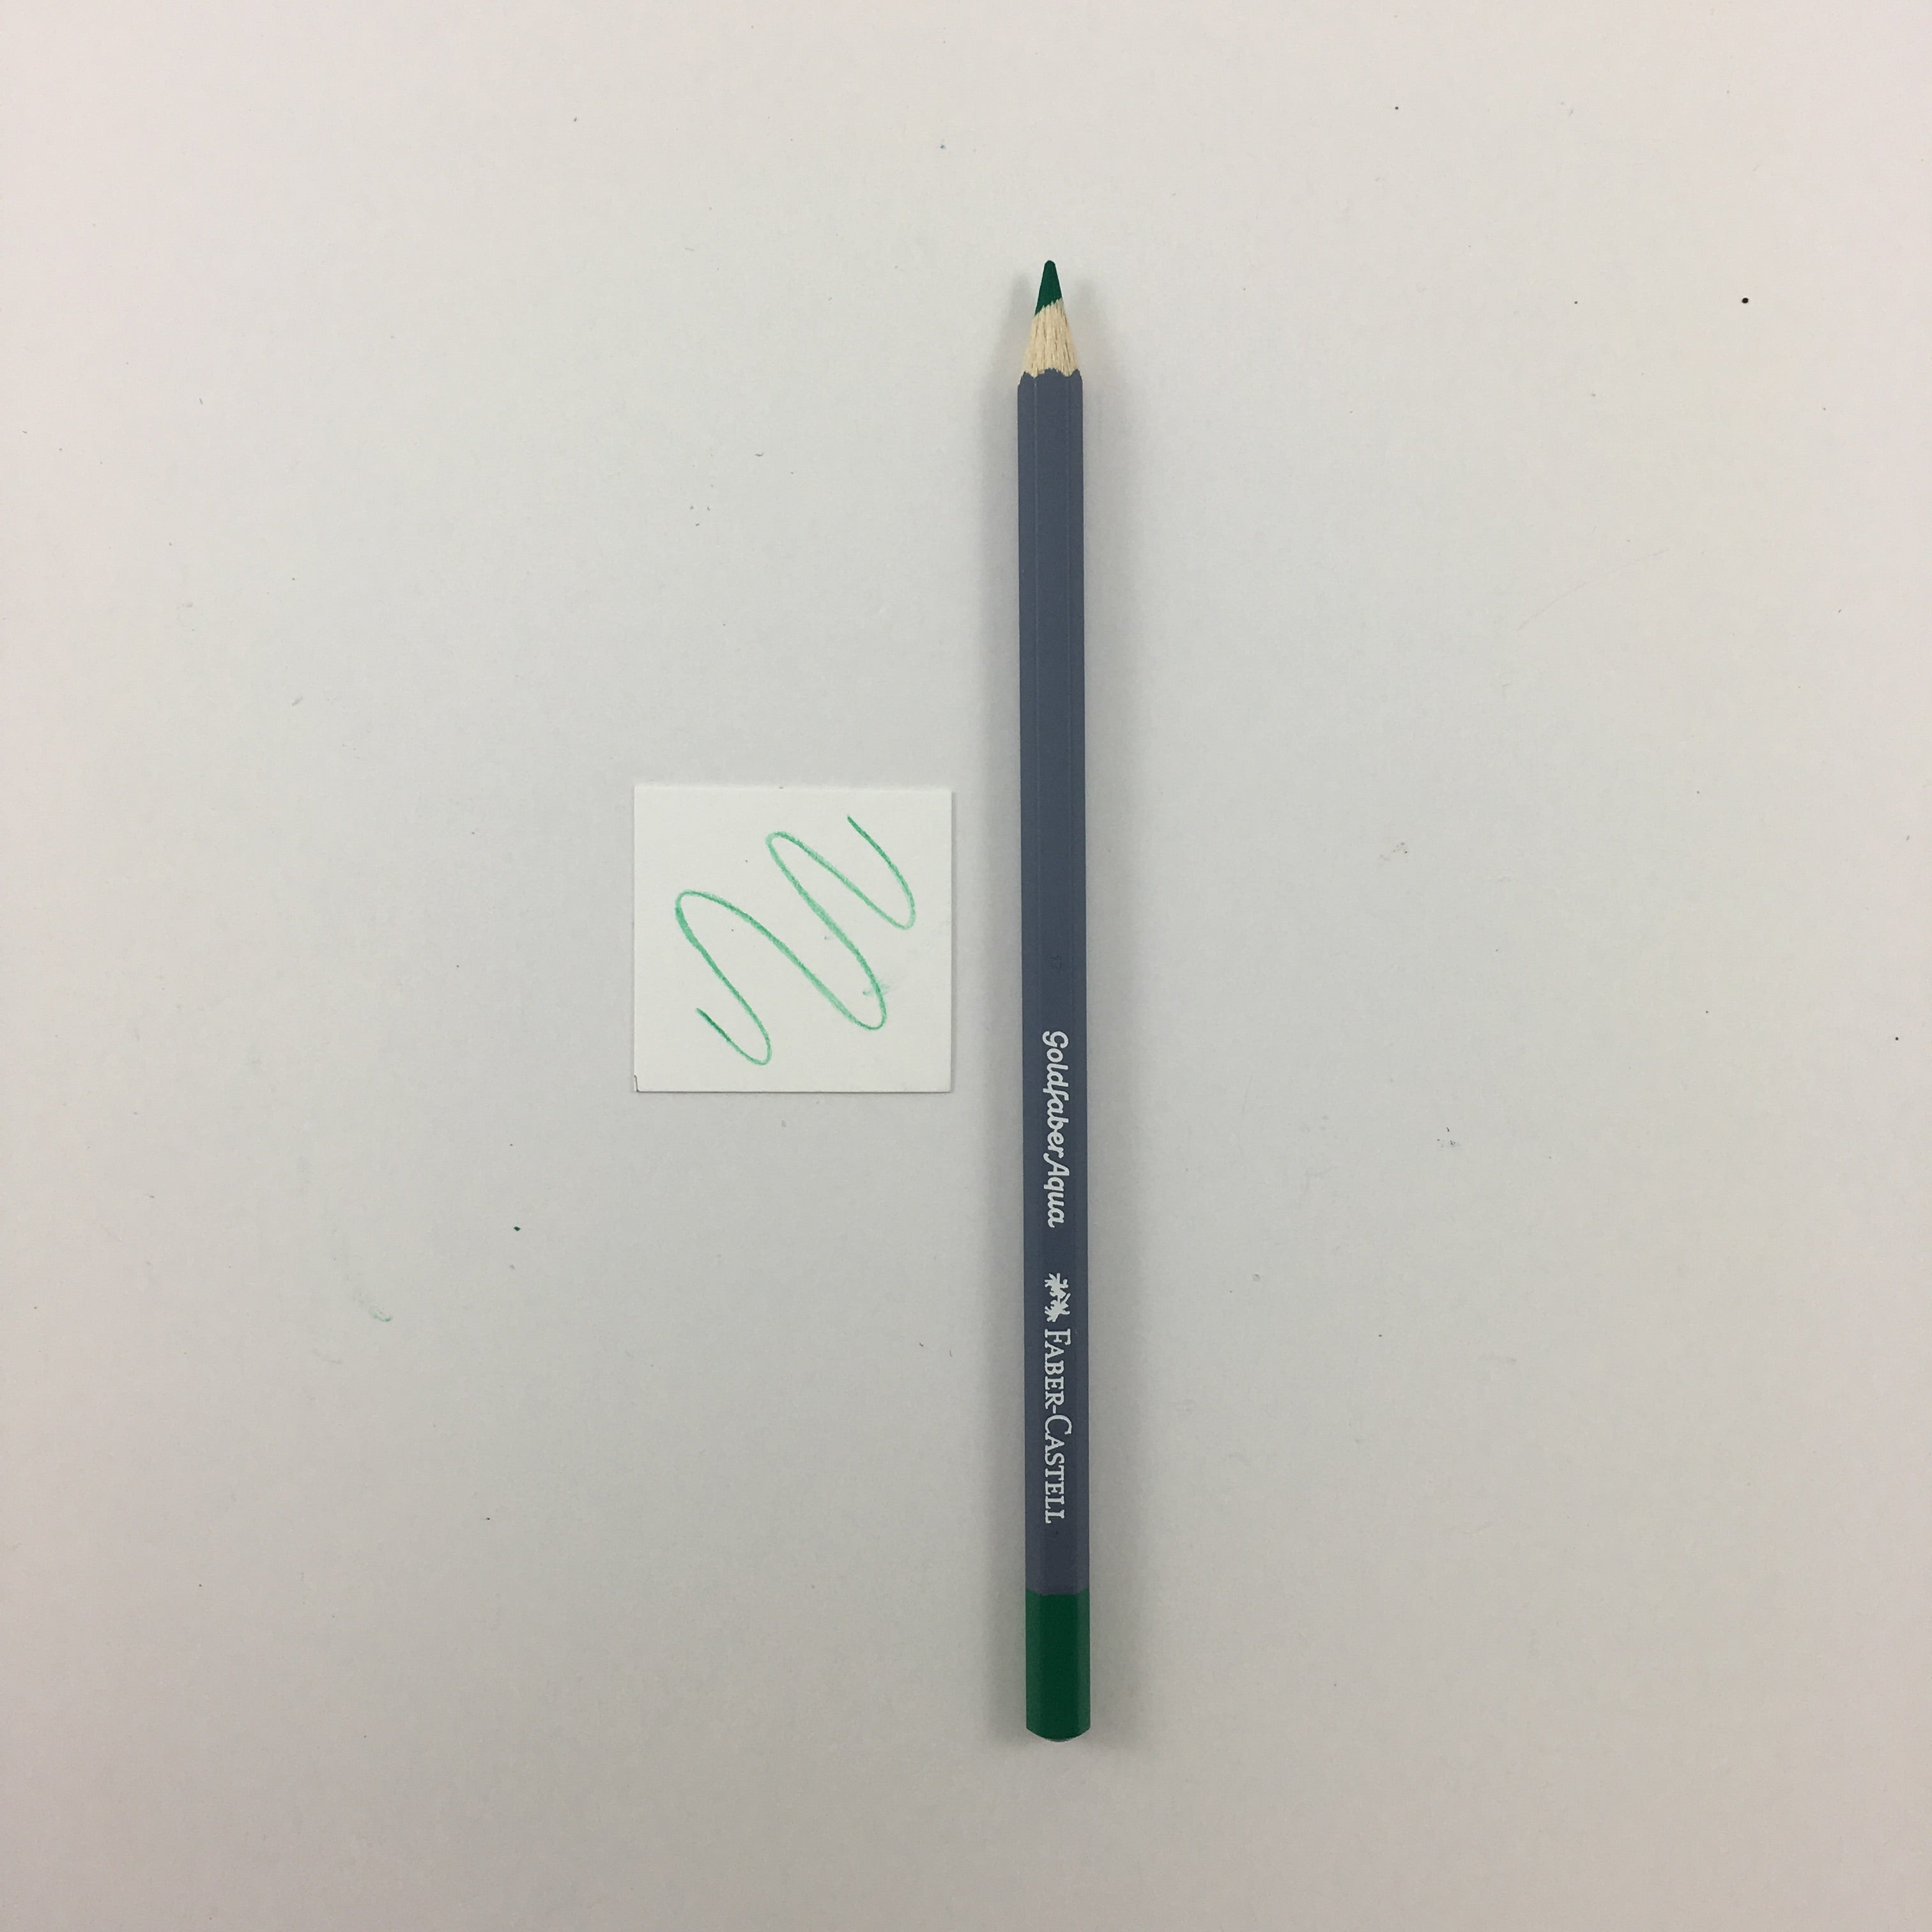 Faber-Castell Goldfaber Aqua Watercolor Pencils - Individuals - 163 - Emerald Green by Faber-Castell - K. A. Artist Shop